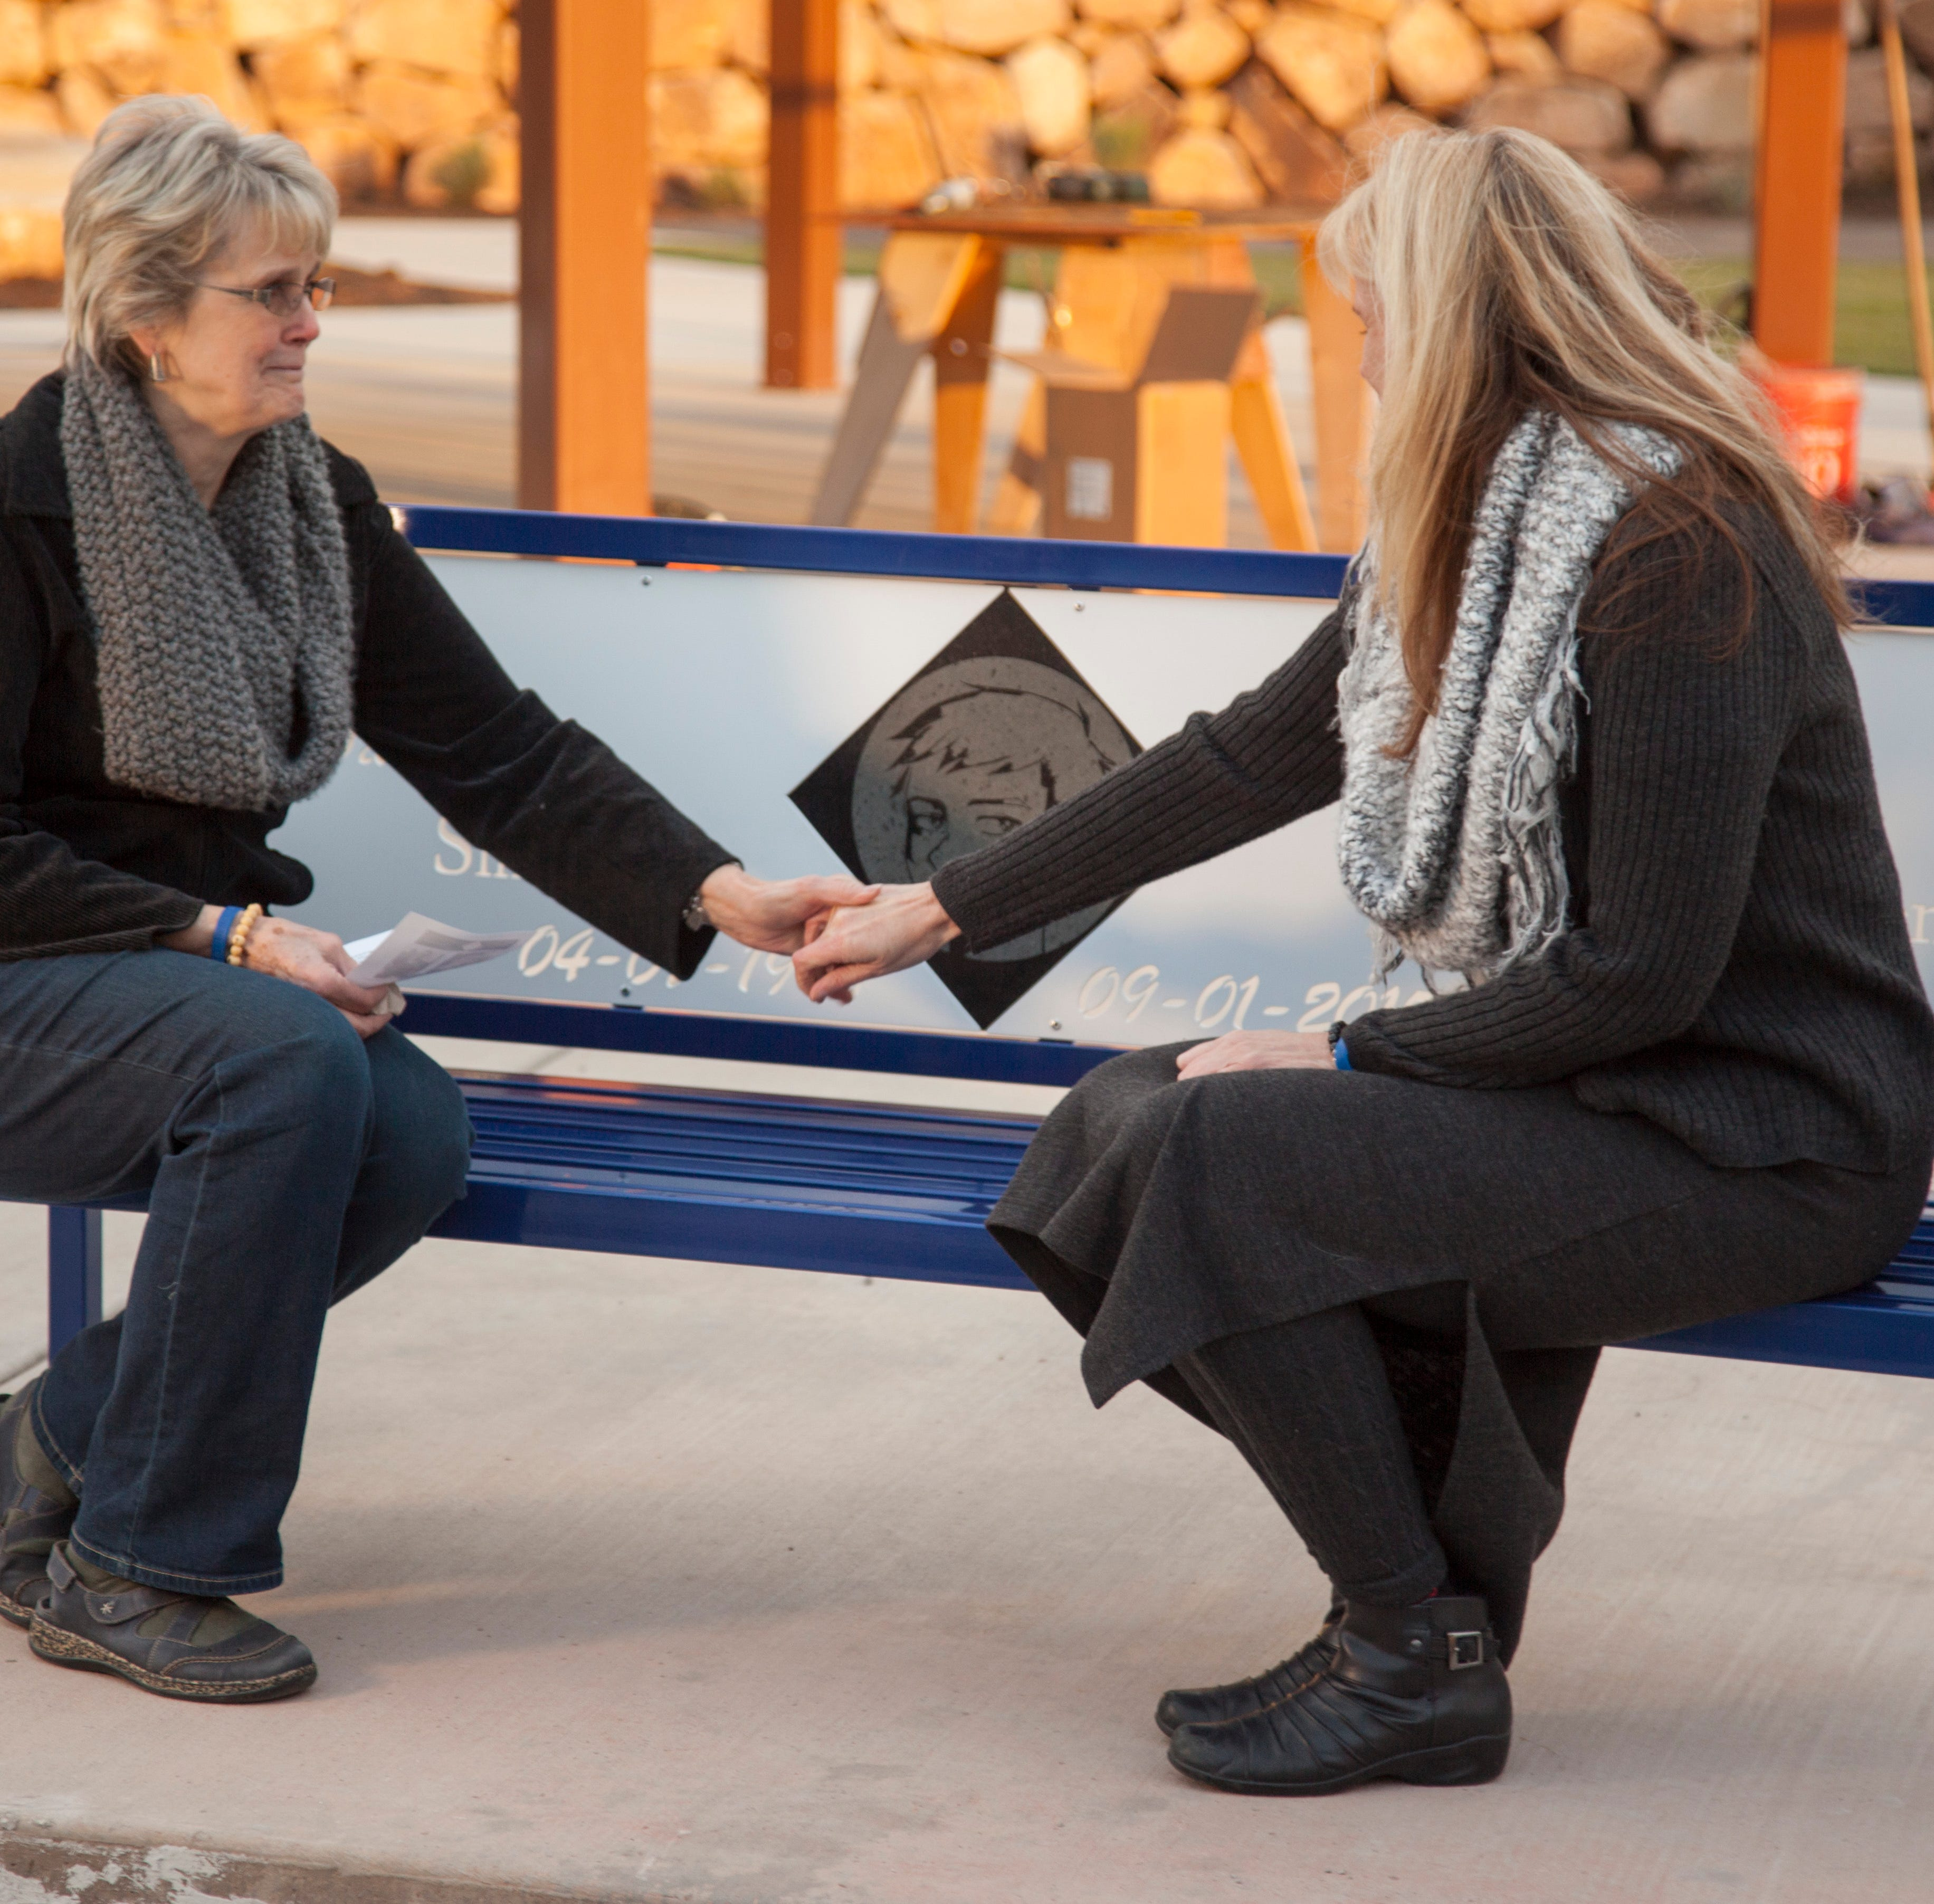 Missing, not forgotten: Park bench dedicated in Macin Smith's name